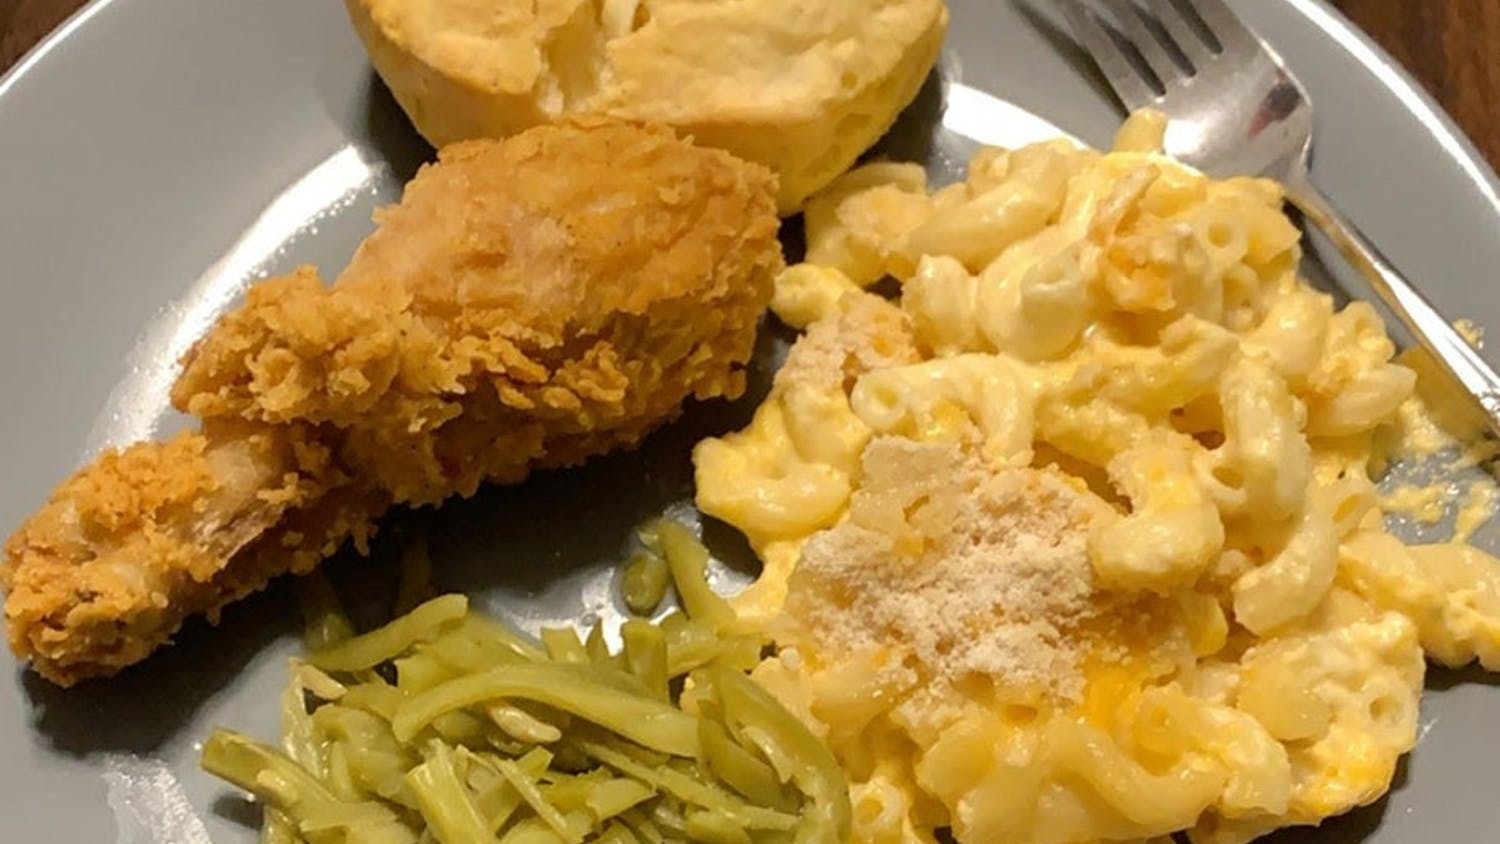 This mac and cheese dinner is a Kramer family favorite. It is an easy recipe and a game-changer for hungry college students.